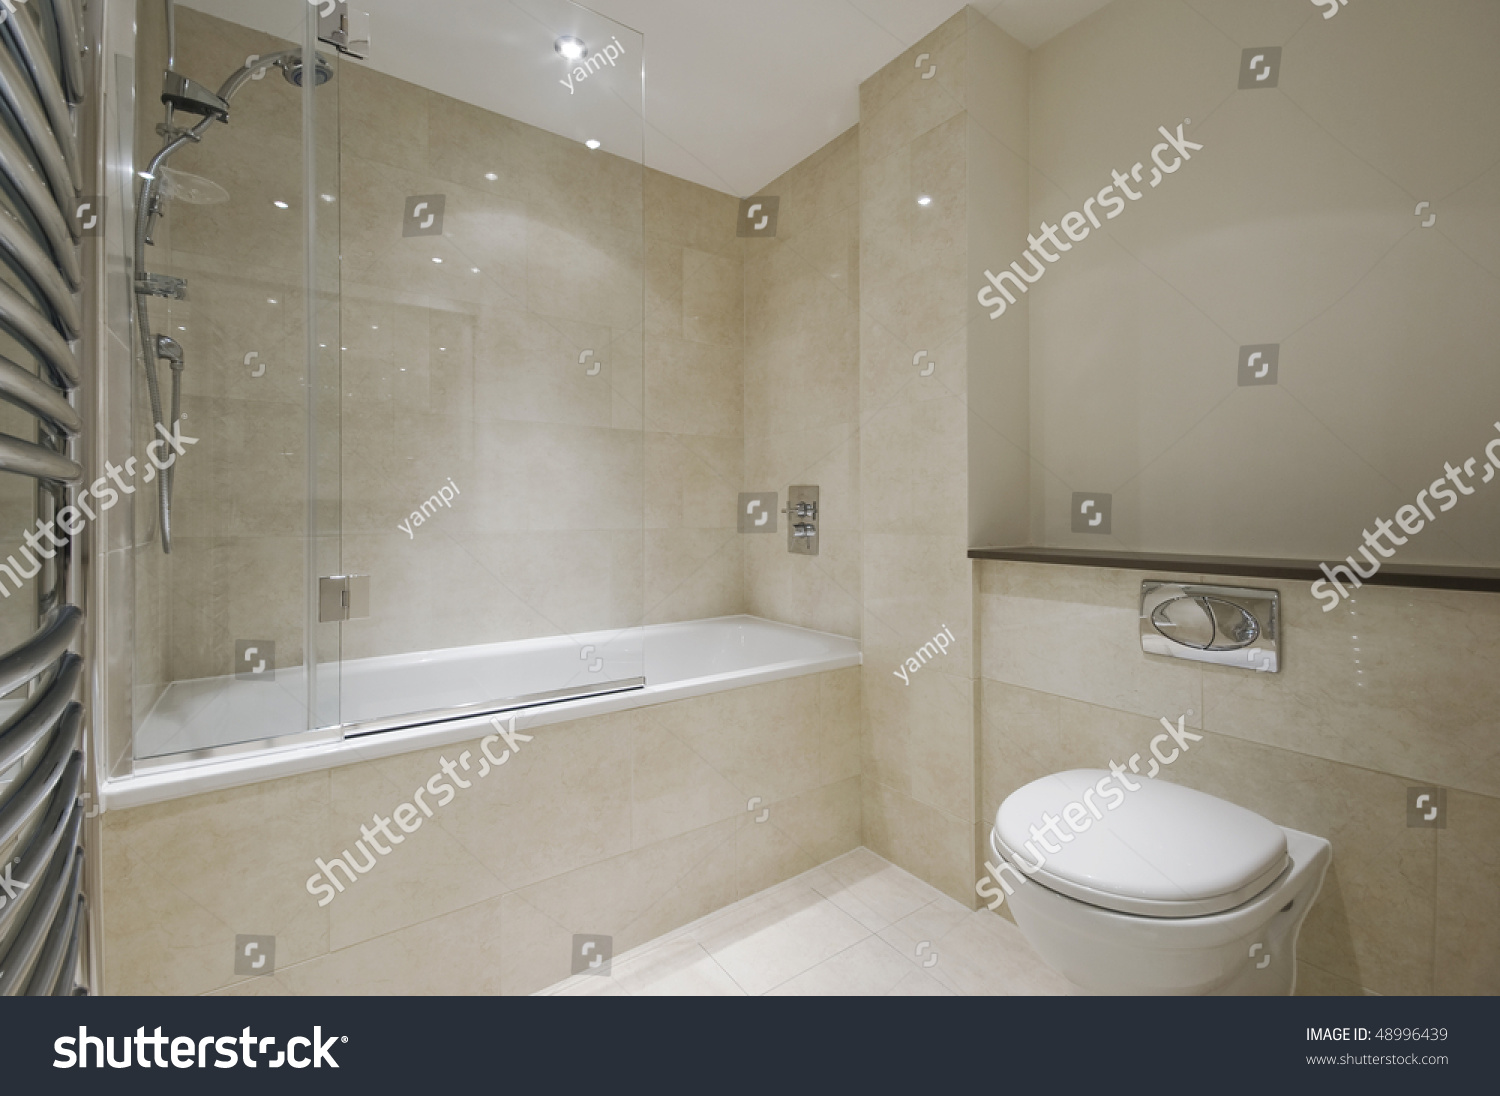 Modern Bathroom With Floor To Ceiling Marble Tiles Stock Photo 48996439 : Shutterstock